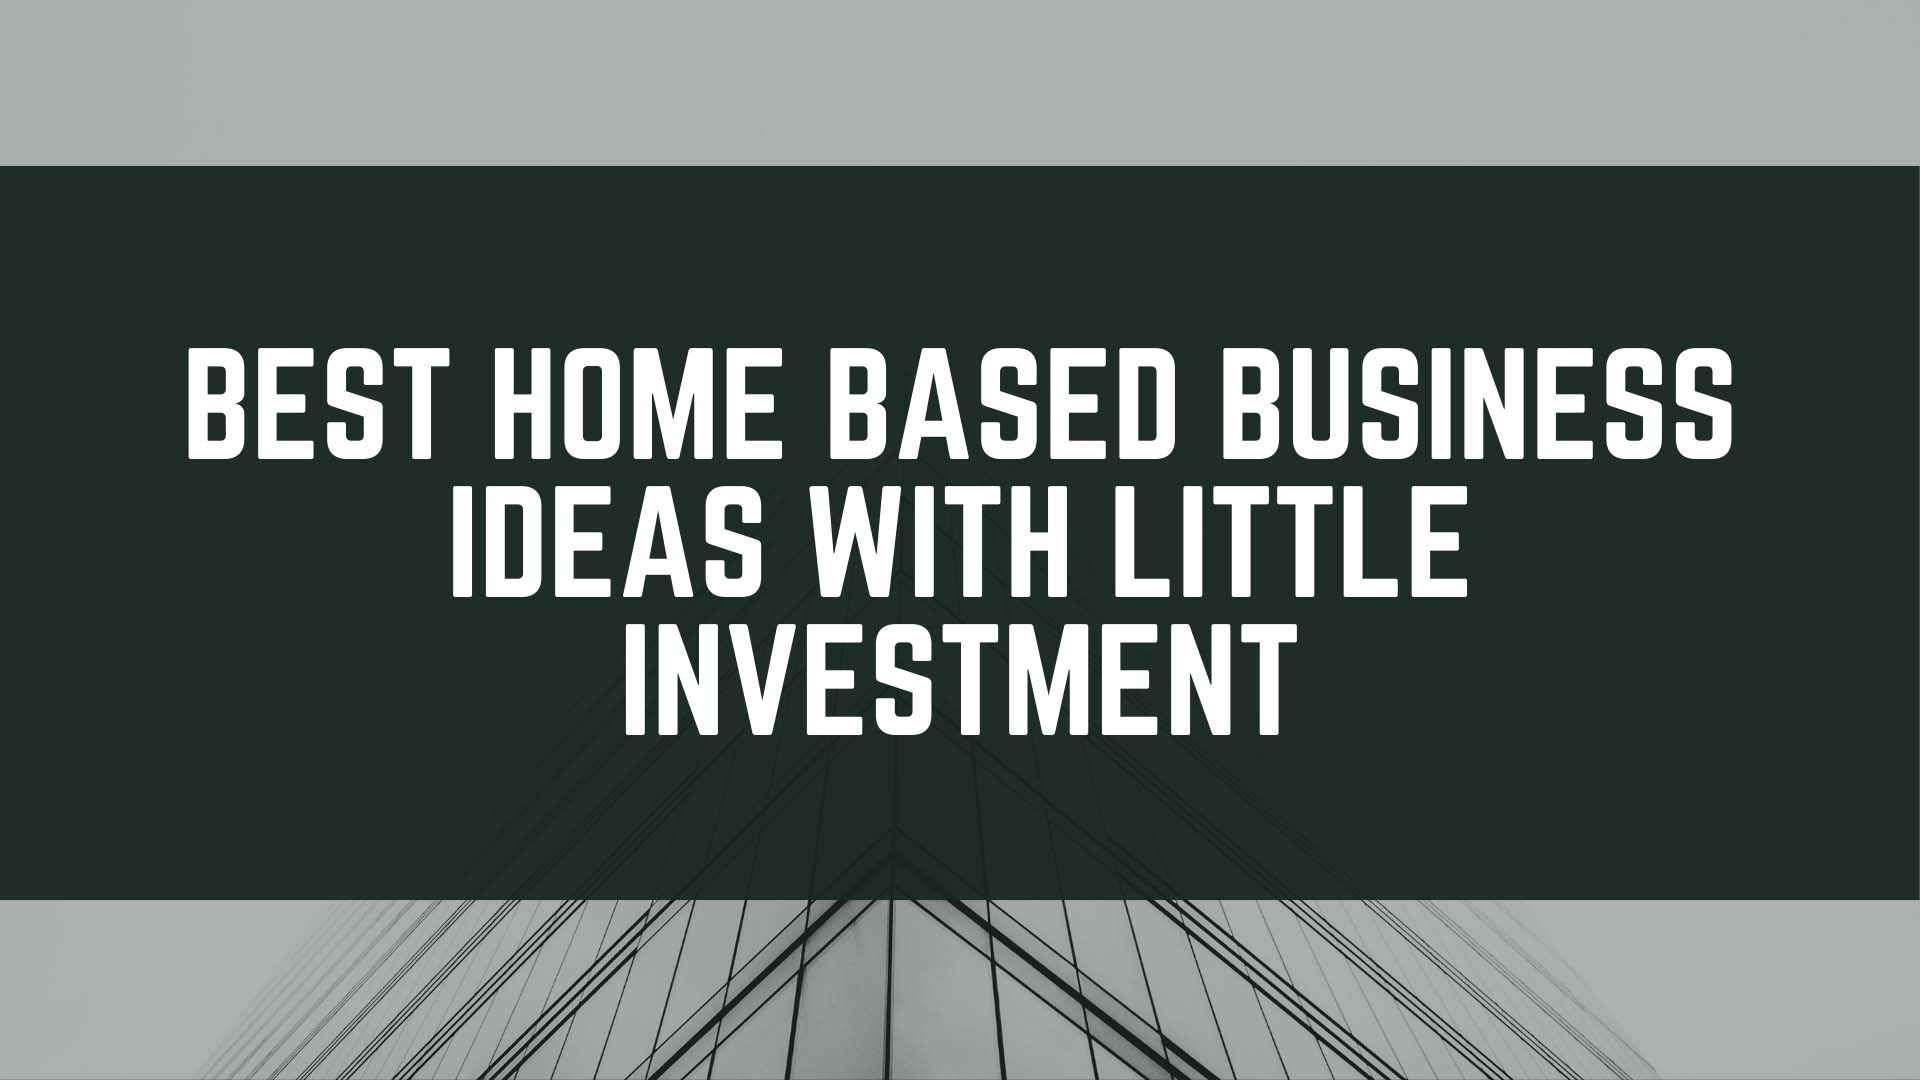 Best Home Based Business Ideas With Little Investment